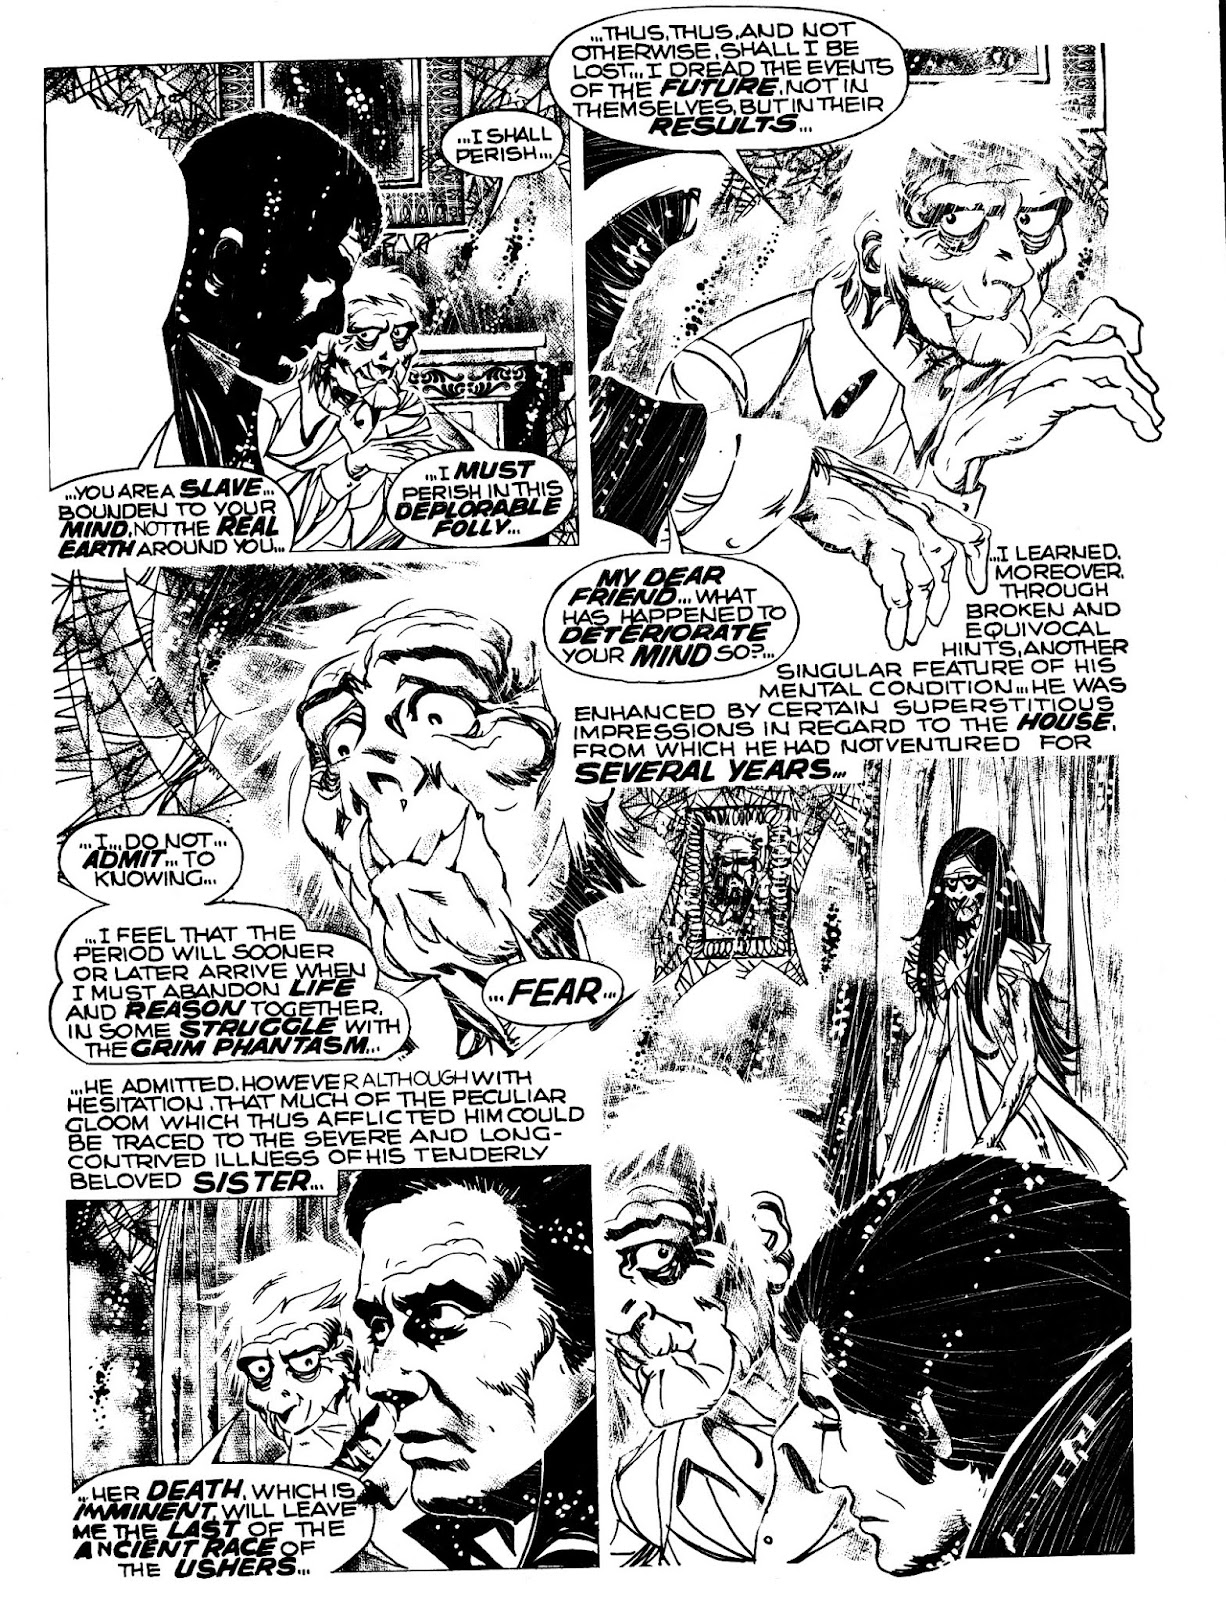 Scream (1973) issue 3 - Page 37